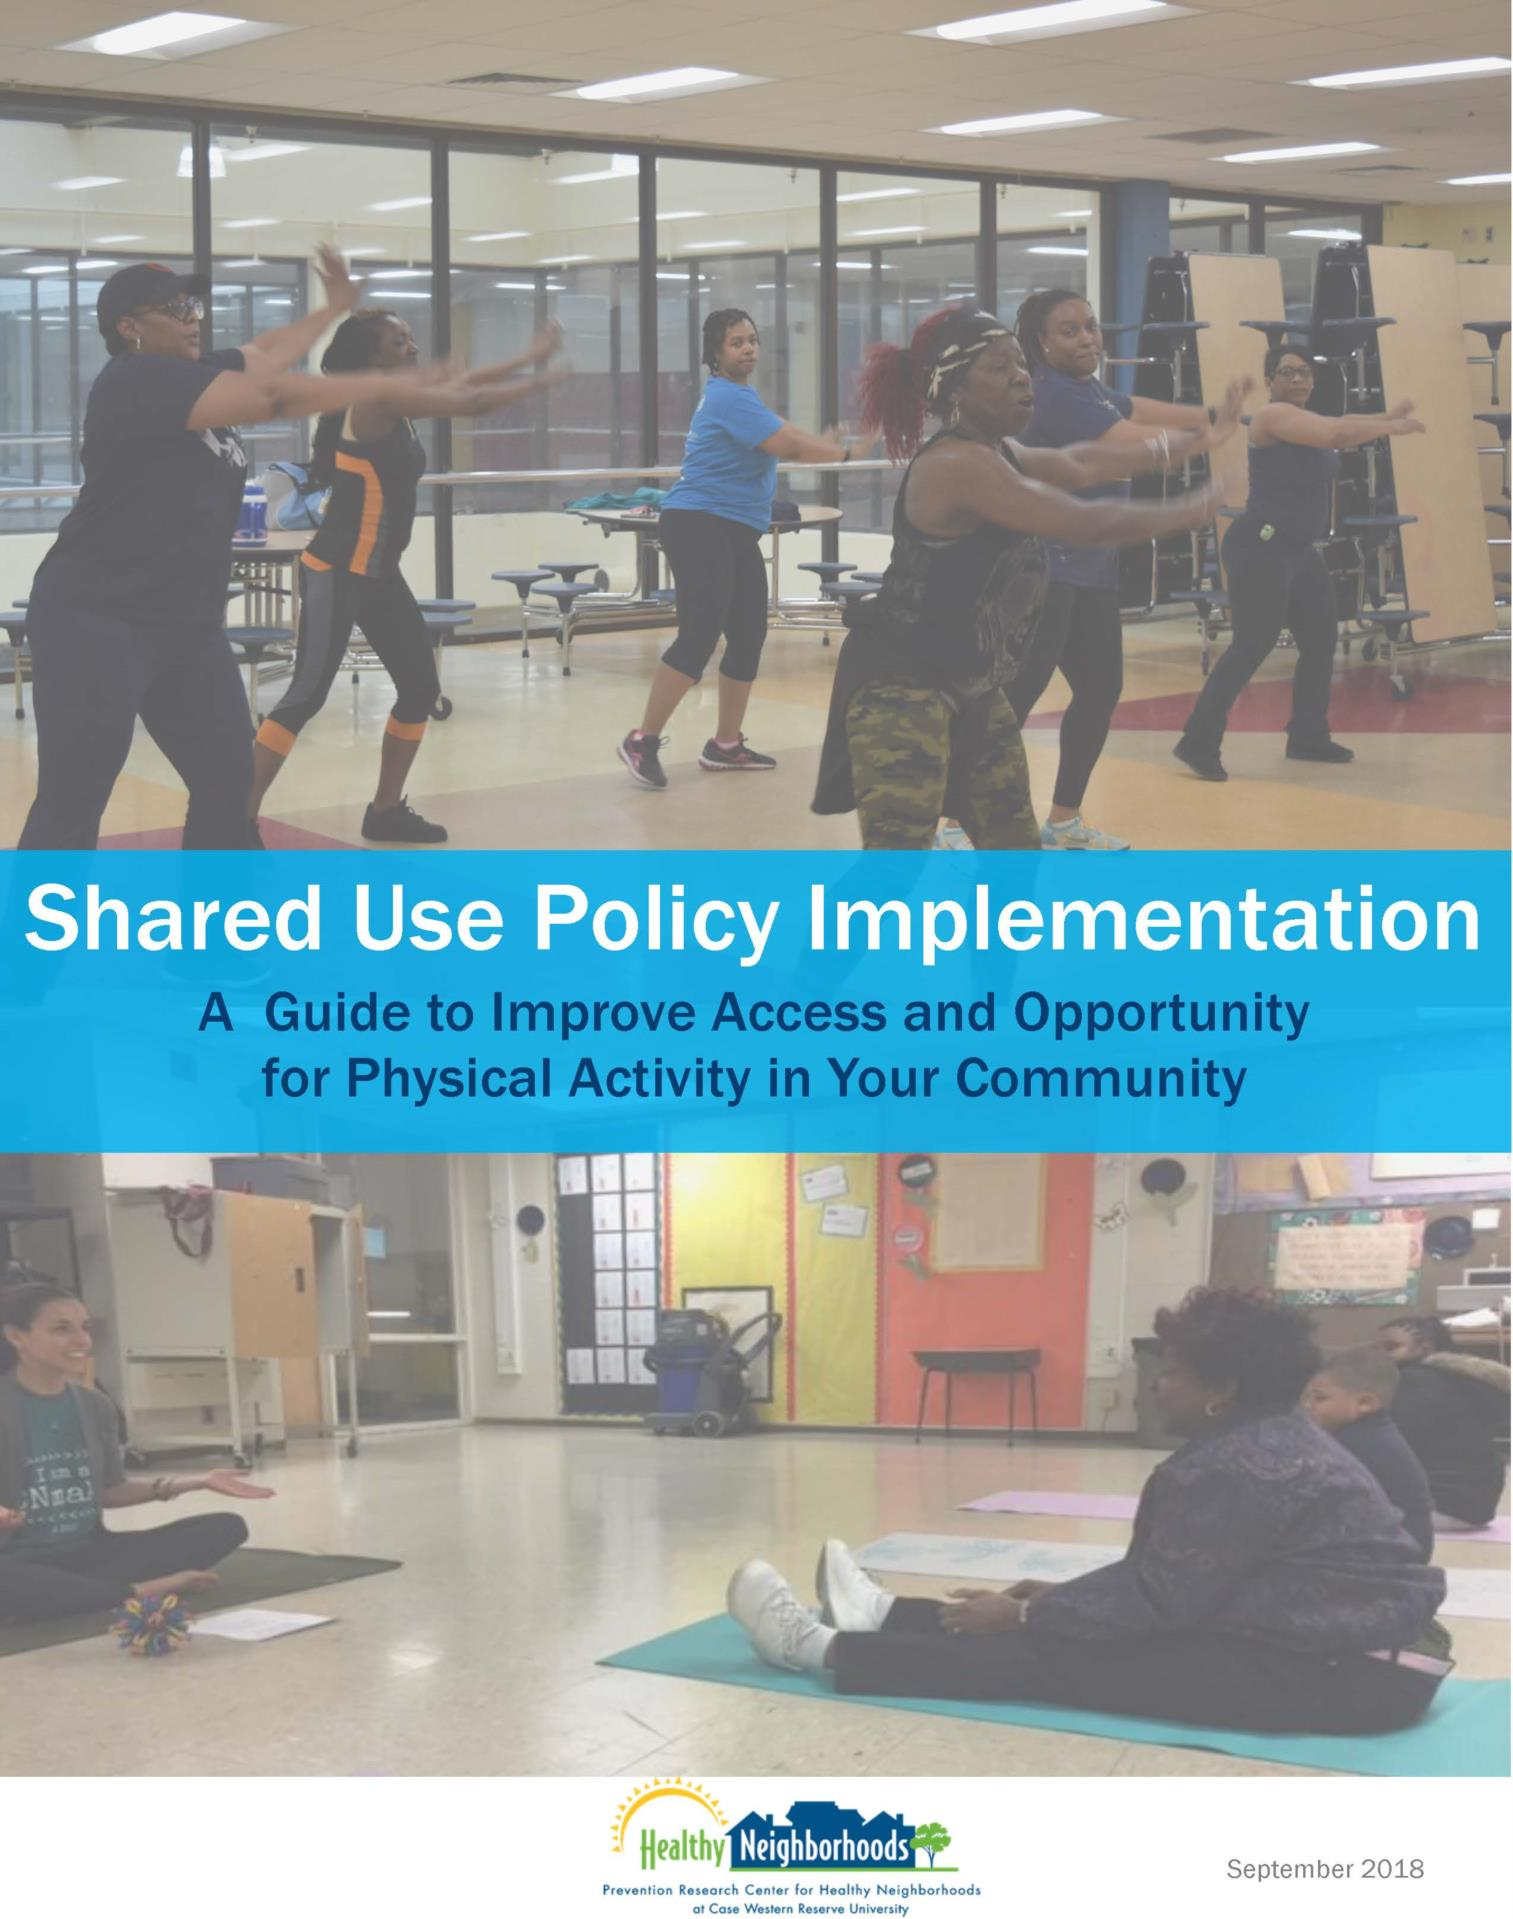 Shared Use Policy implementation guide cover